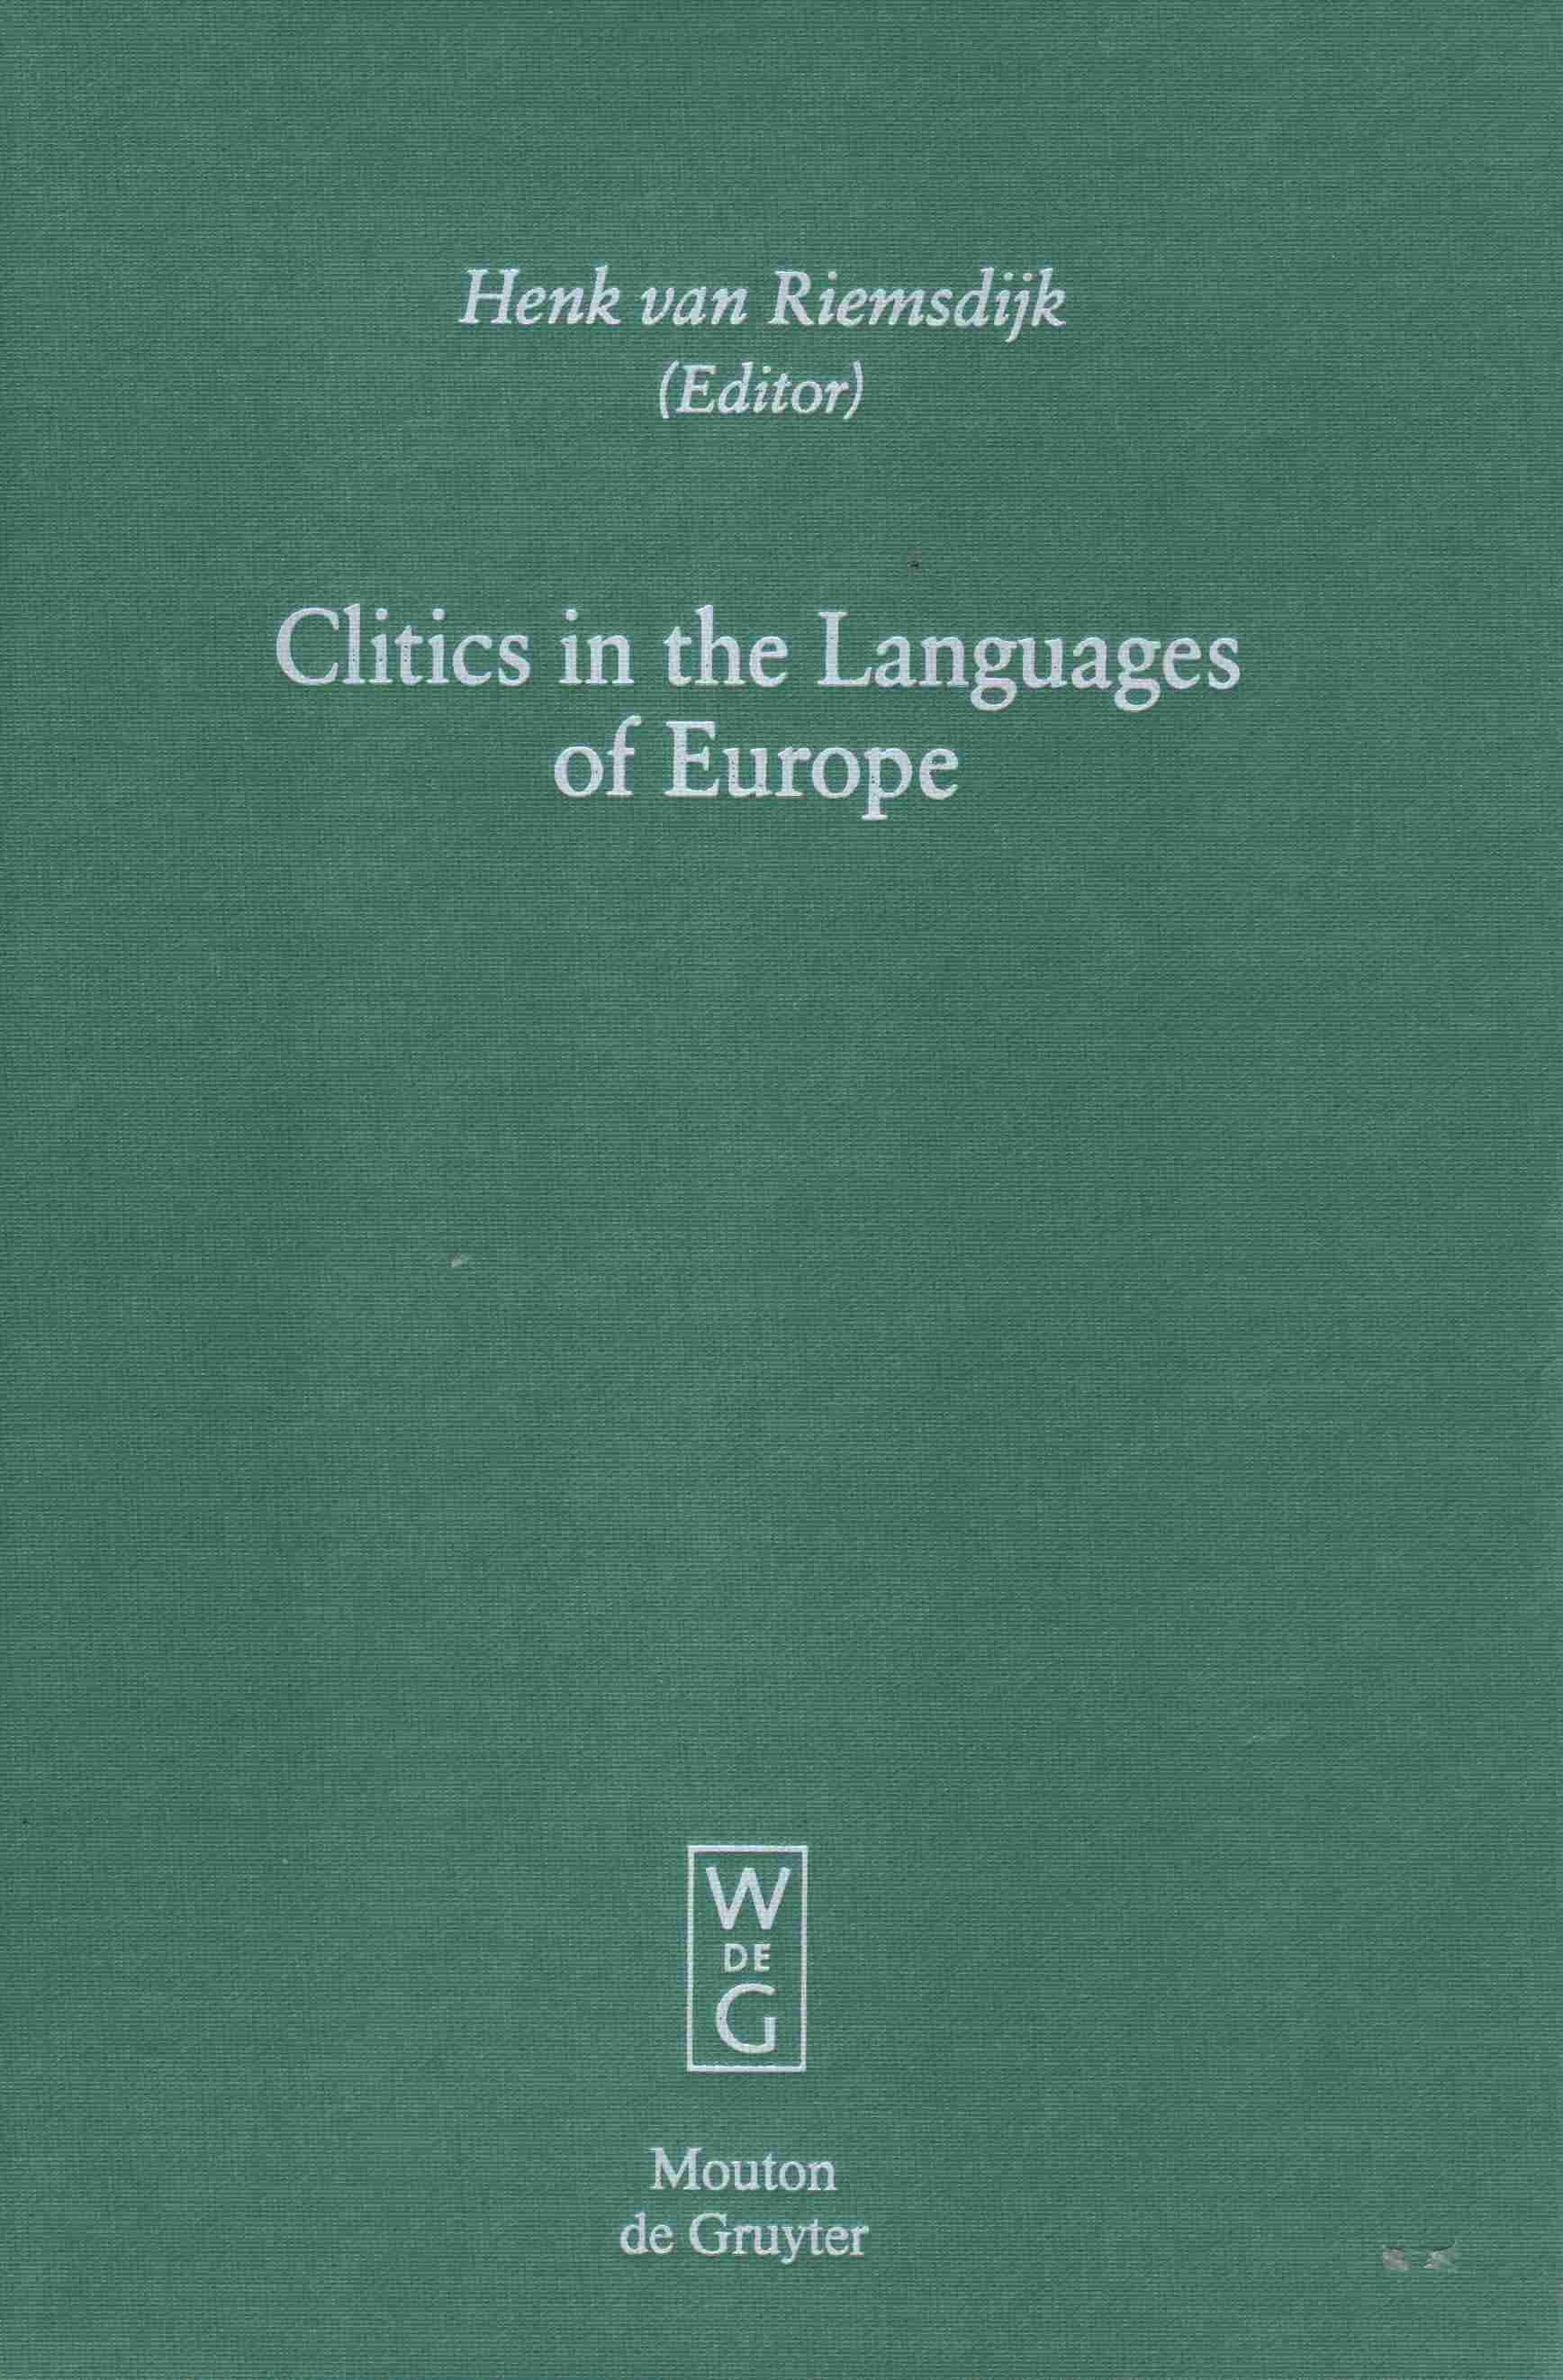 Clitics in the Languages of Europe